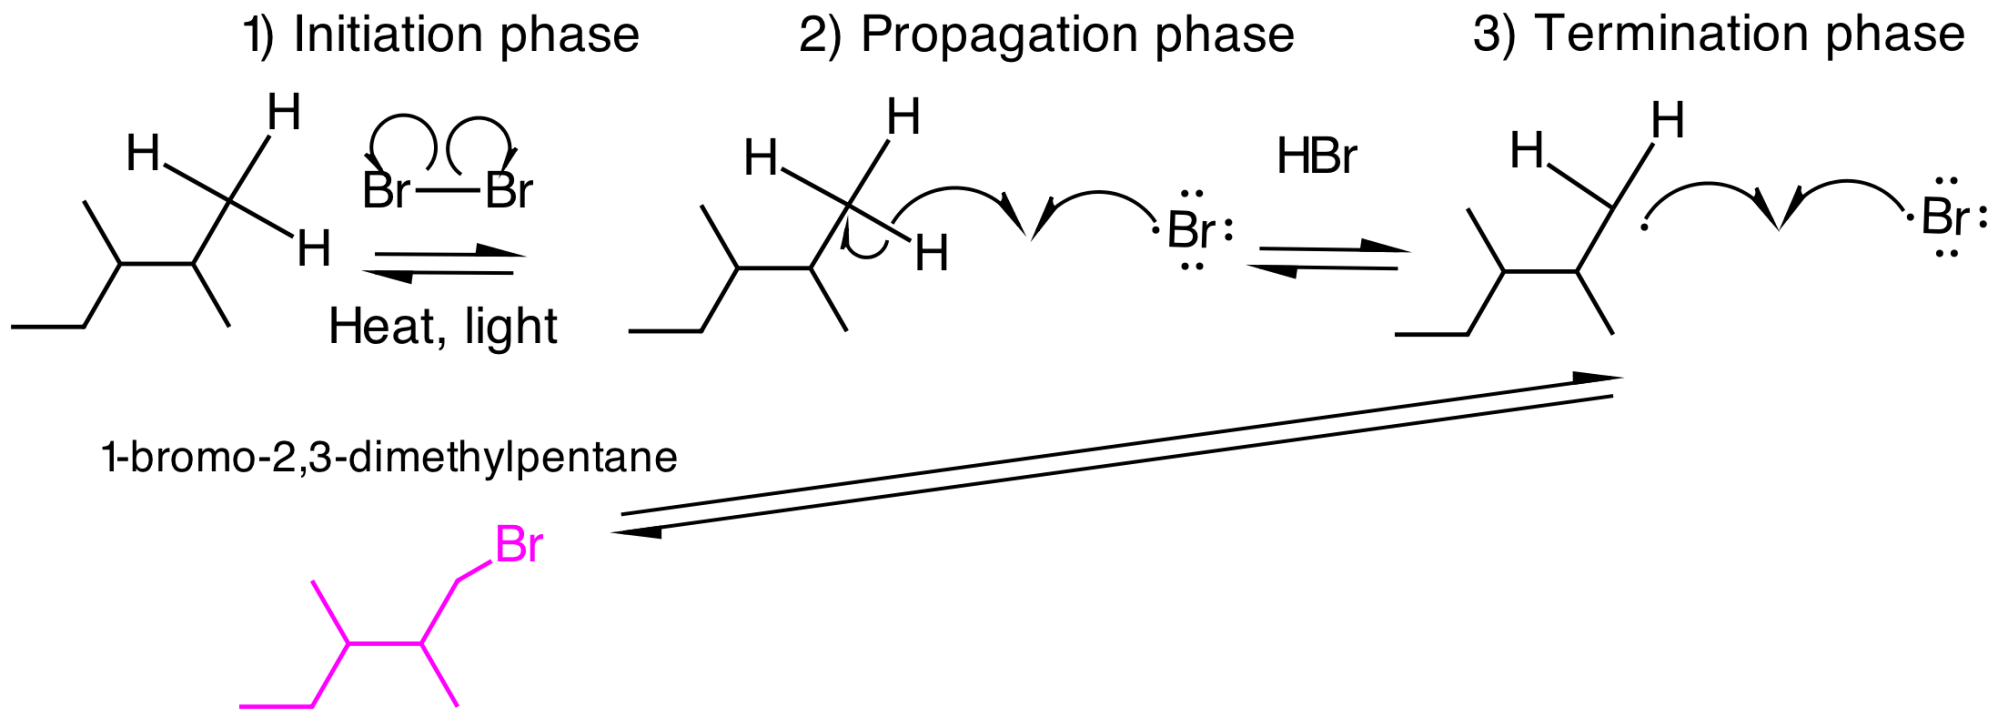 hight resolution of my prof says that i am missing a propagation step with another bromine bromine molecule